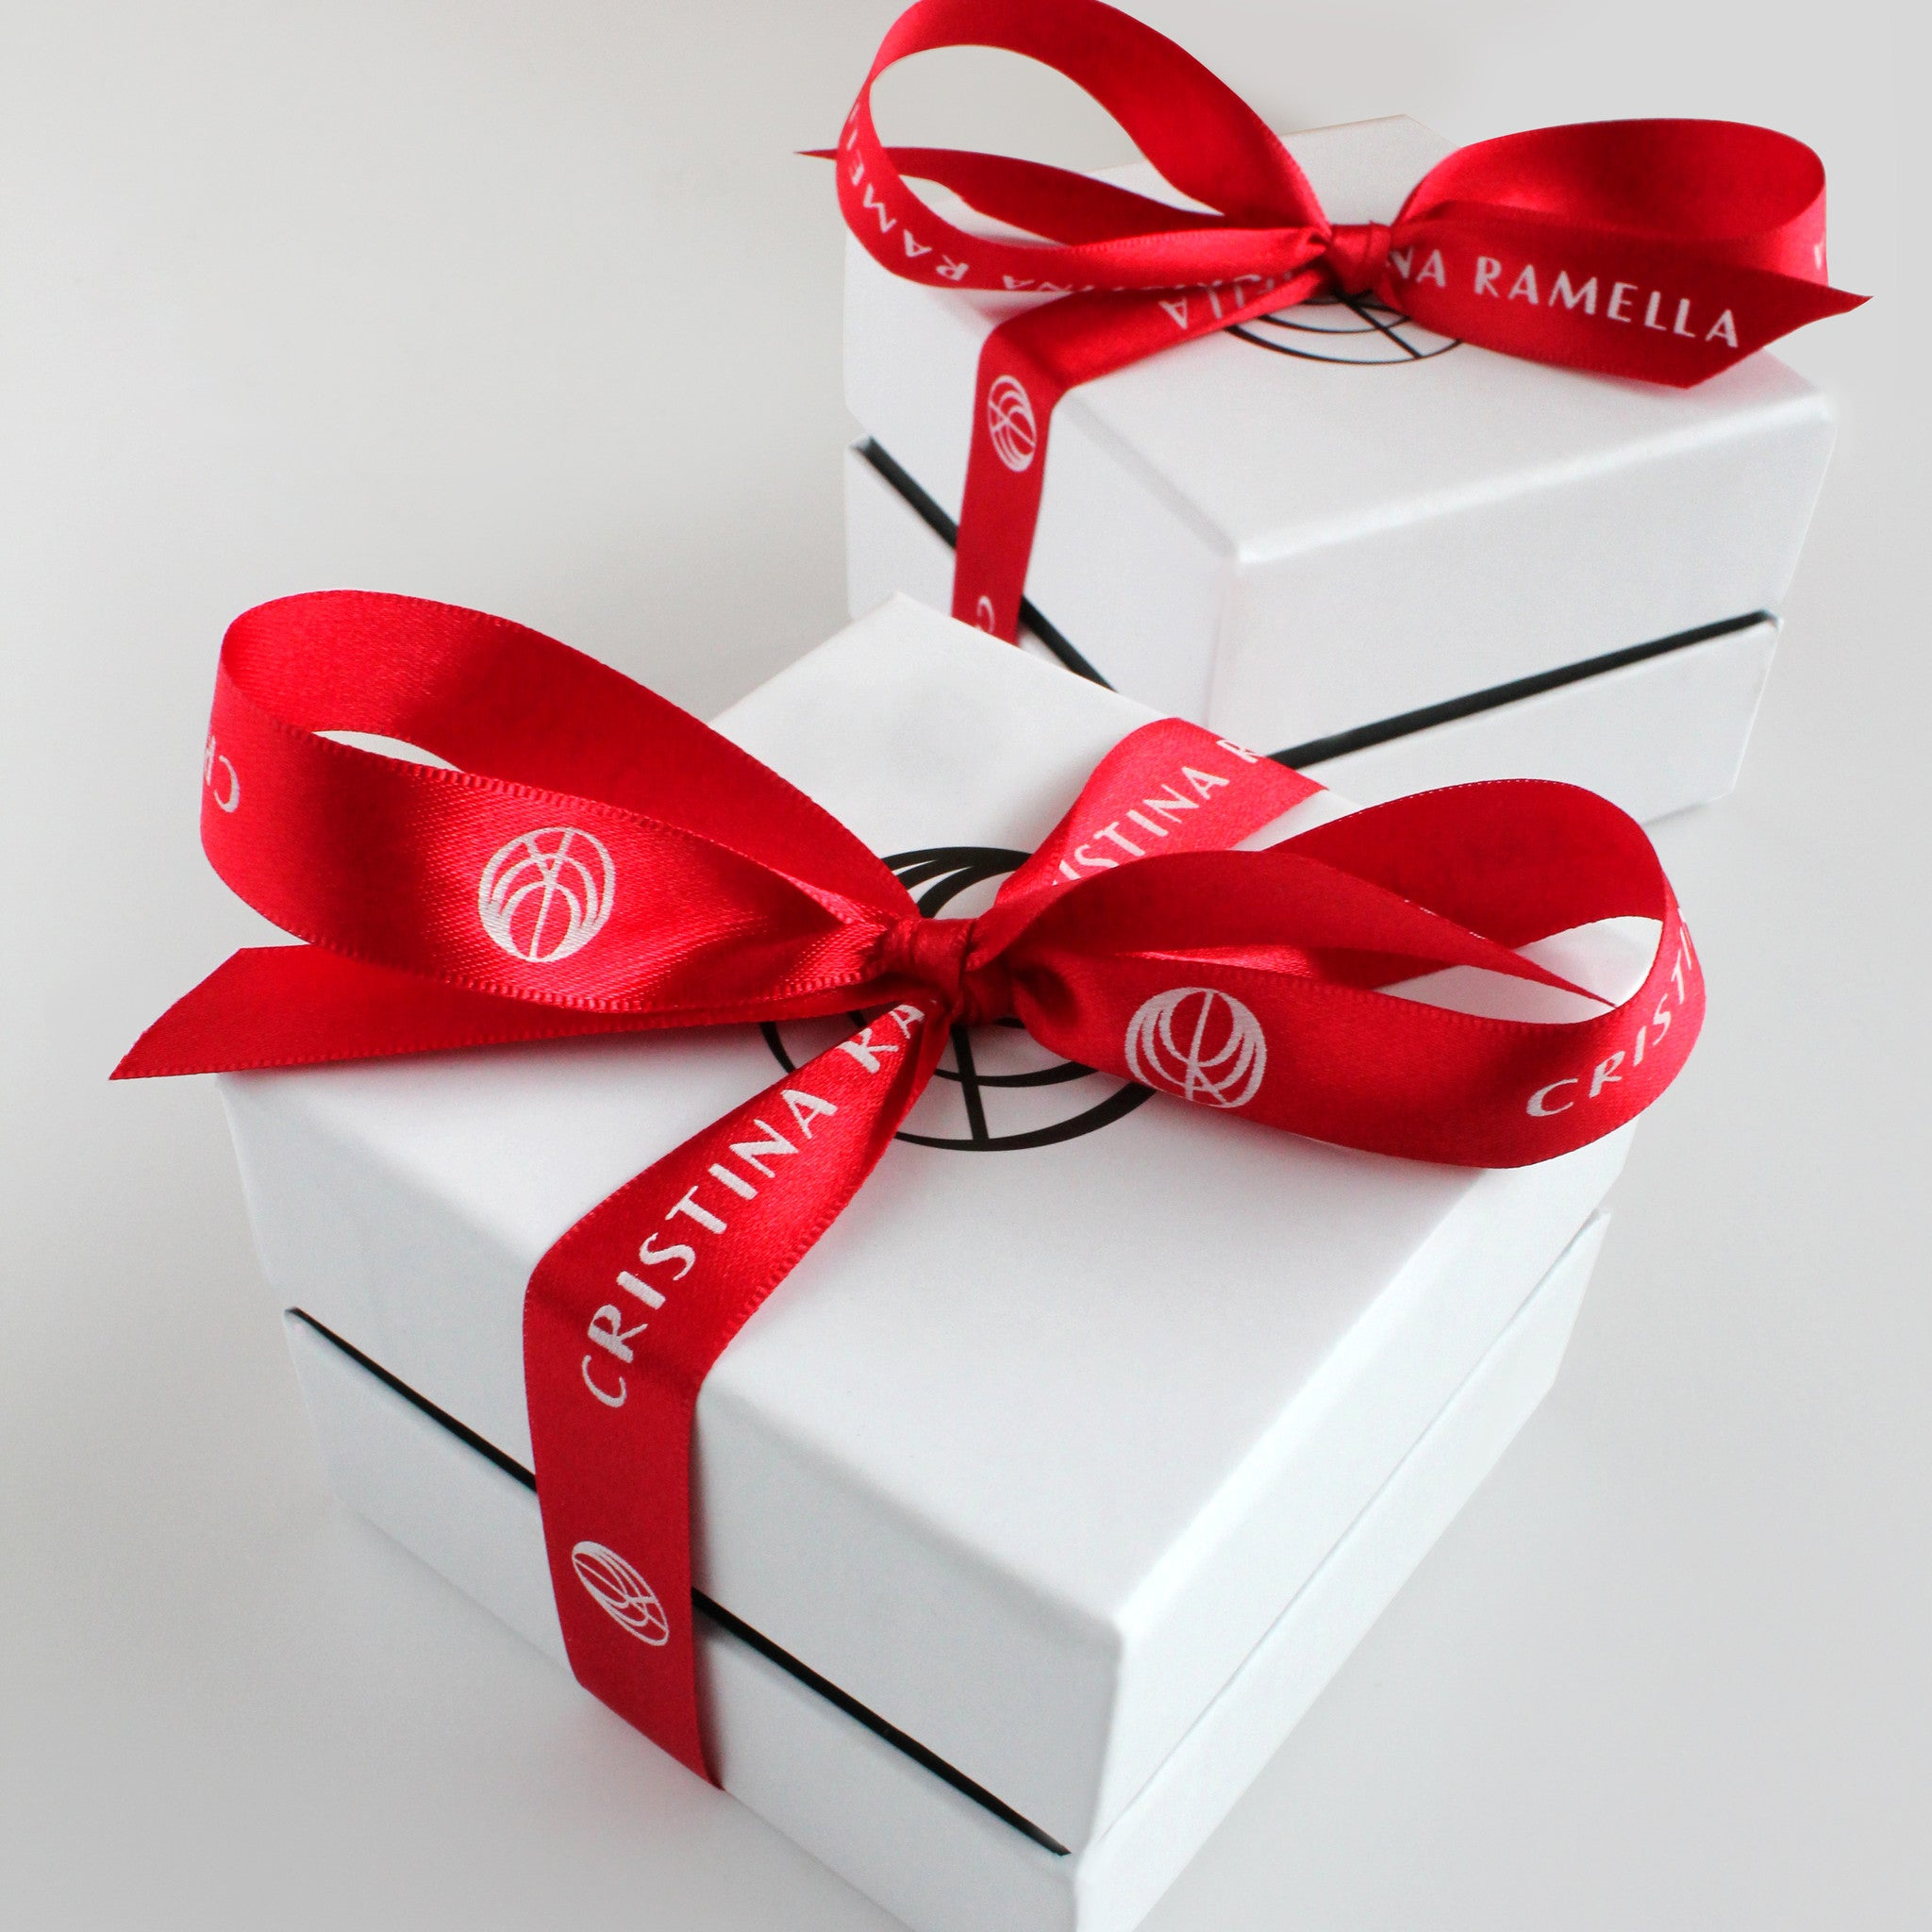 cristina ramella packaging brand luxury gifts for her